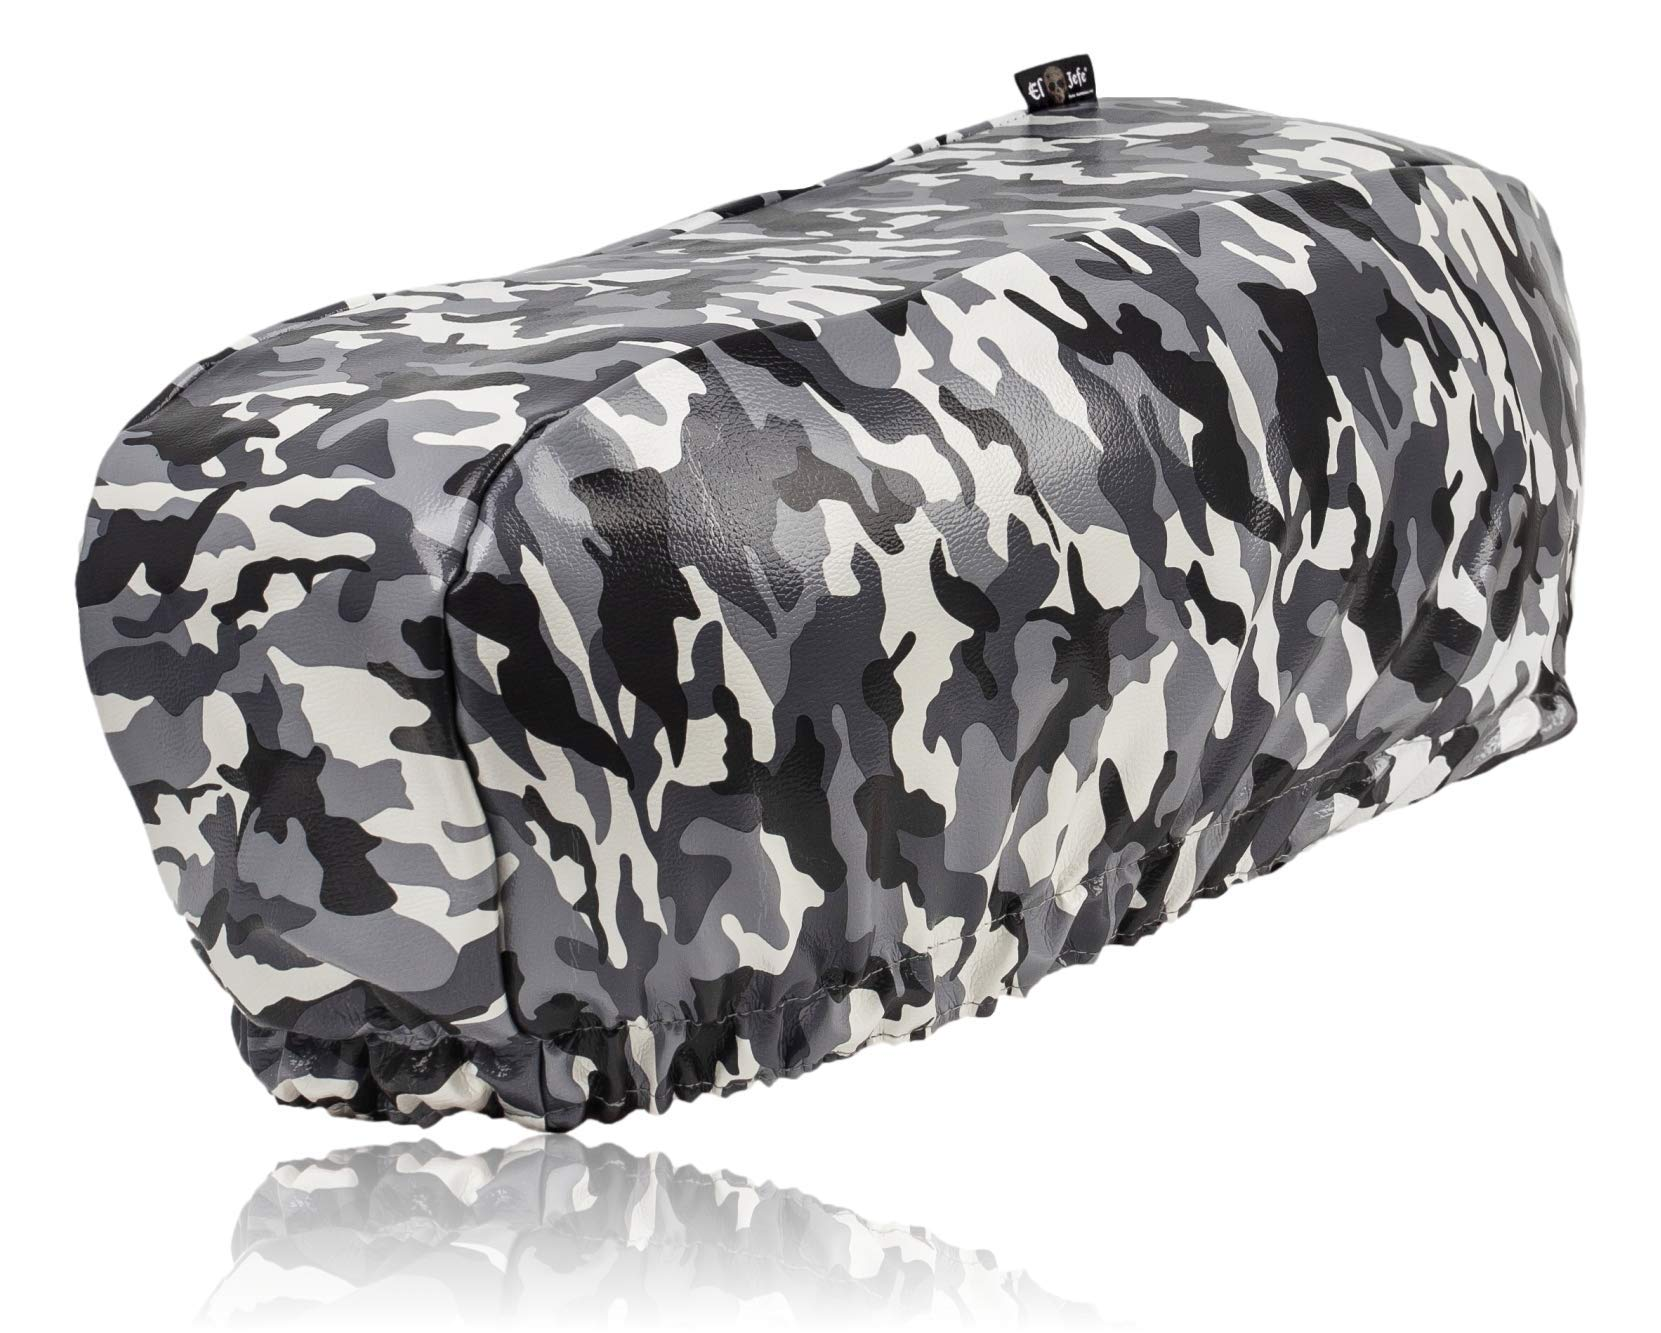 EL JEFE Camo Winch Cover Dust-Proof, Waterproof, UV & Mildew-Resistant Winch Protection Cover W/Sewn-in Elastic Band | Ideal for Electric Winches Up to 17500 Lbs (Camo) by EL JEFE